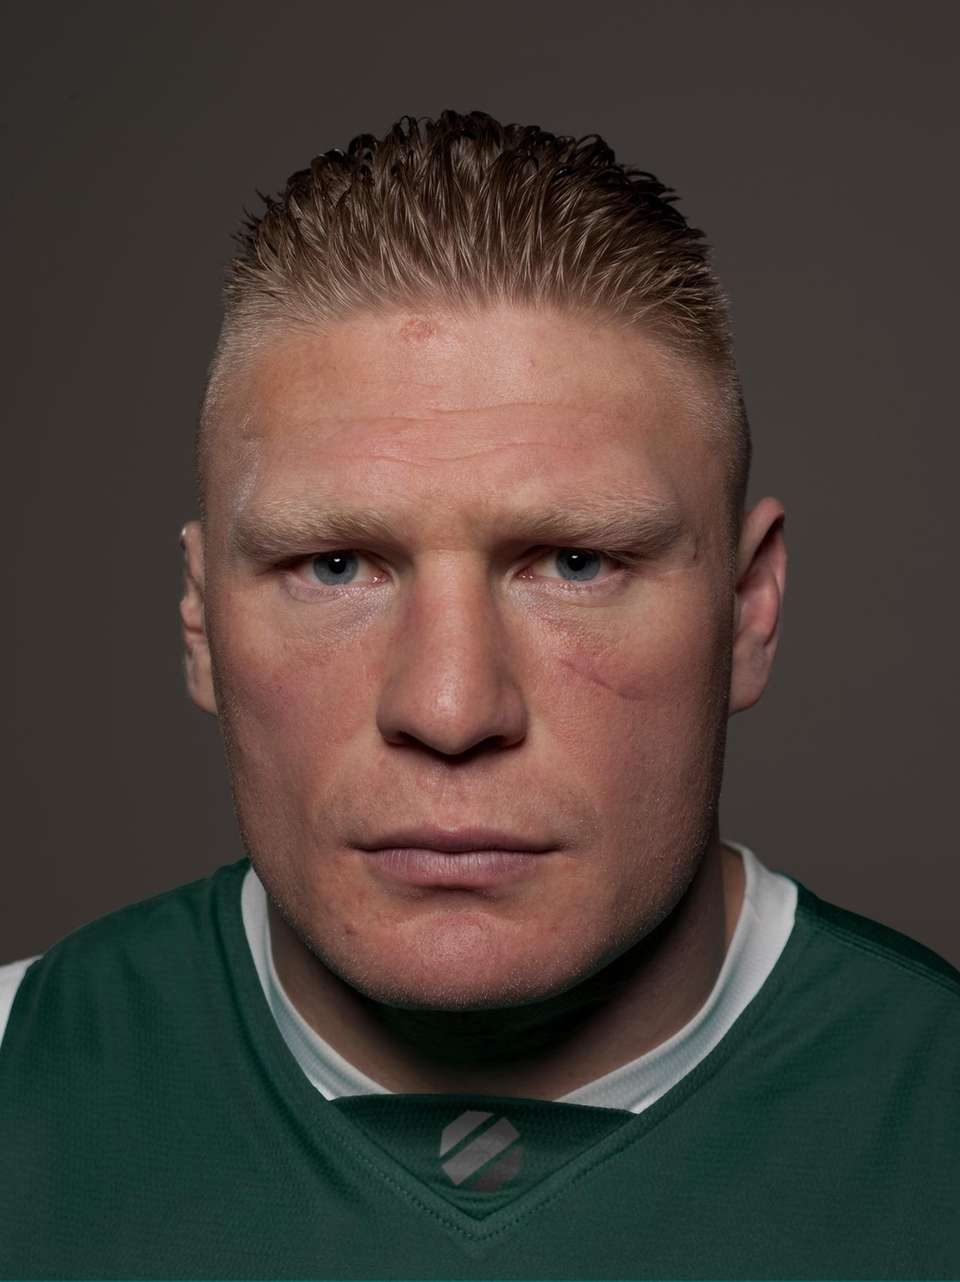 Former UFC heavyweight champion Brock Lesnar is a